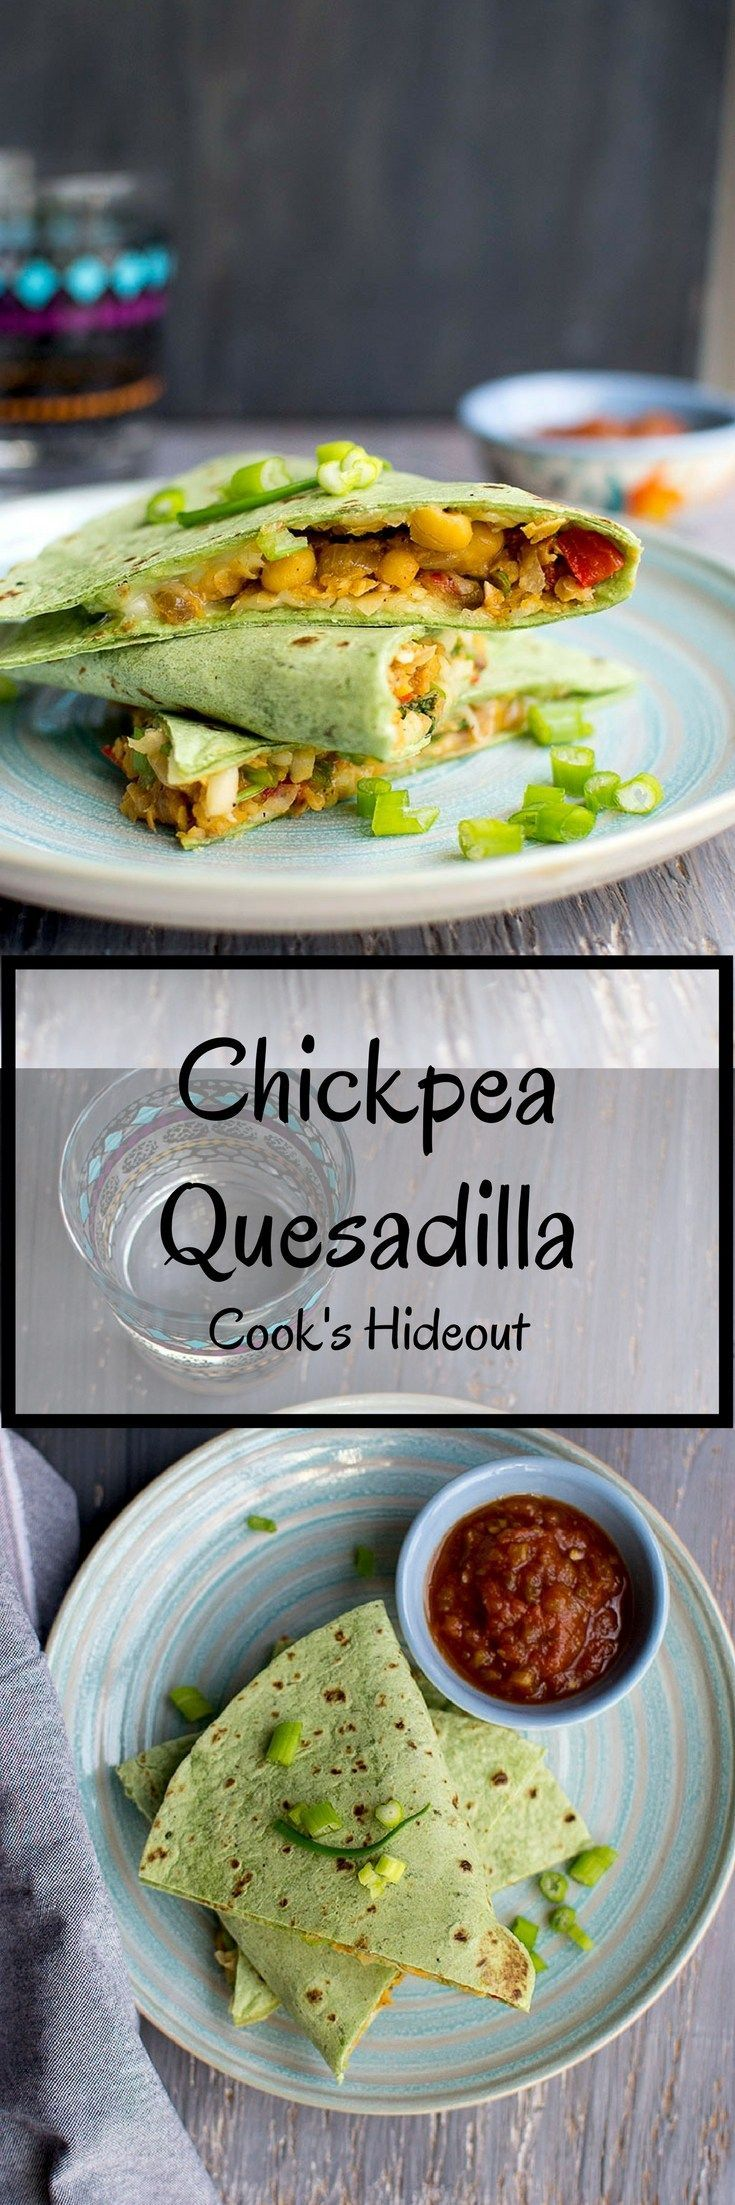 Perfect weeknight meal and lunch box item  Quesadilla with vegetarian filling Quick and easy vegetarian Quesadilla recipe with protein packed chickpea and cheese filling...